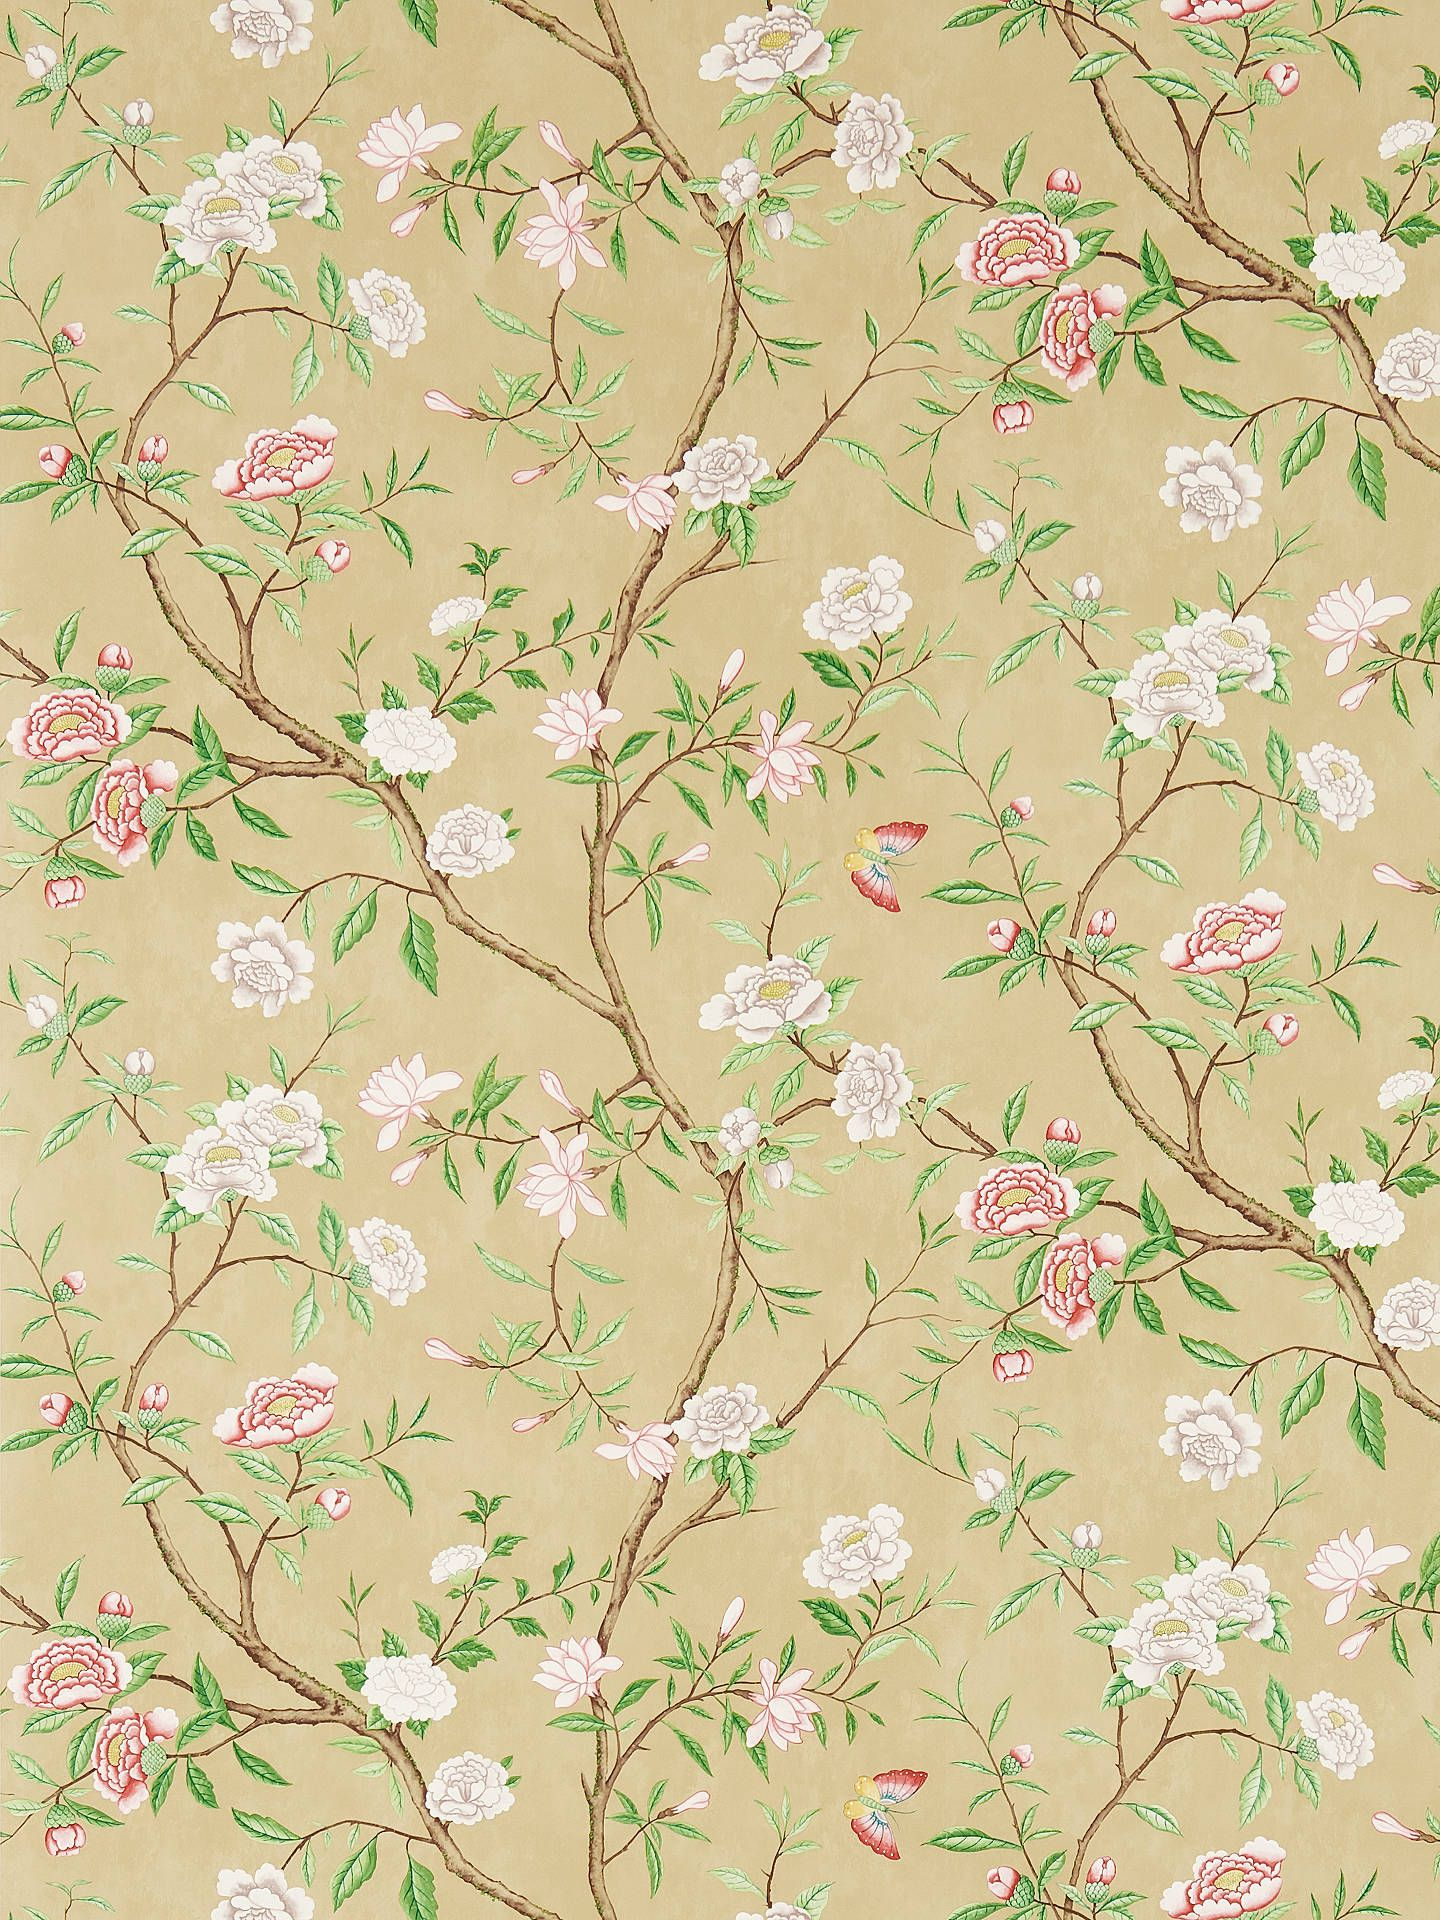 Zoffany Nostell Priory Wallpaper Old Gold Green Zw00311418 In